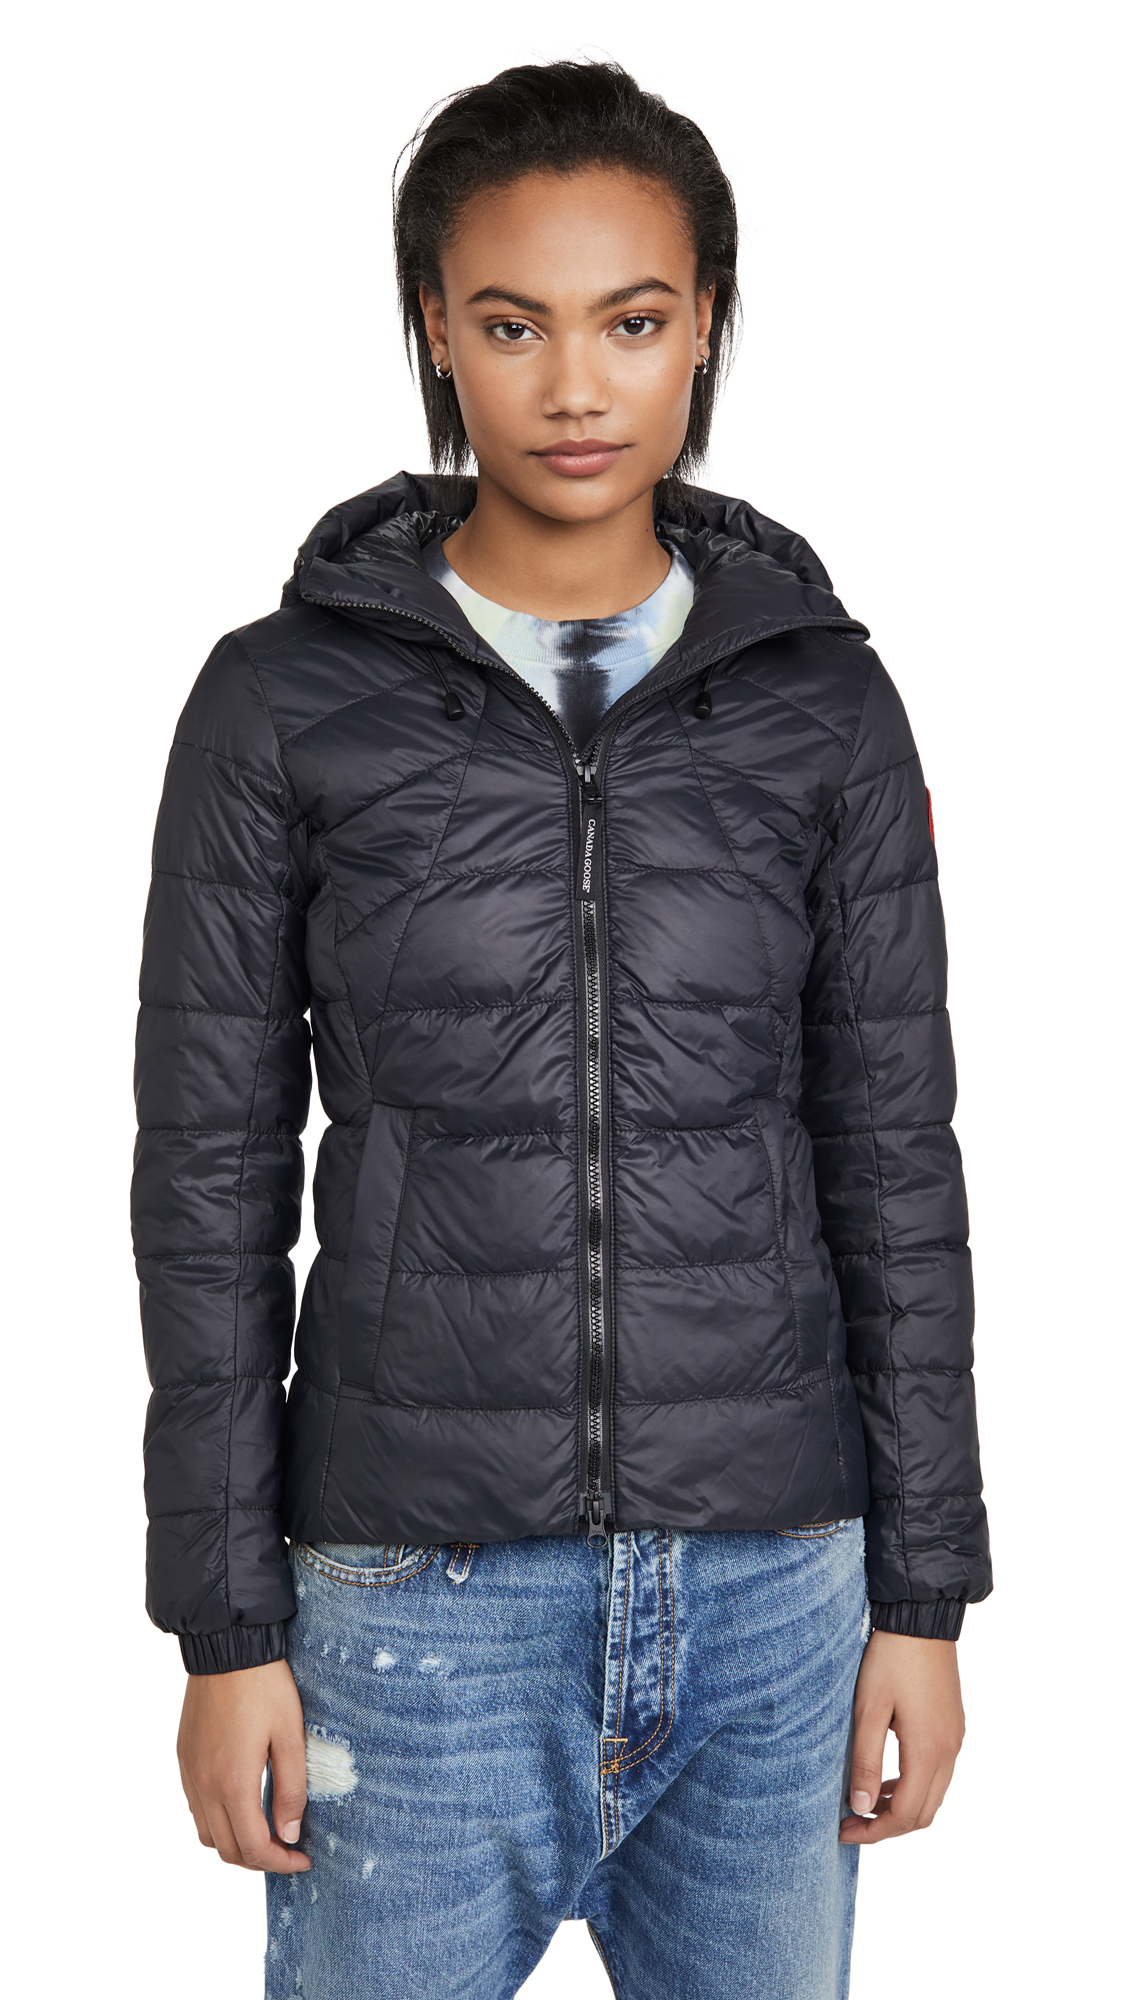 Buy Canada Goose Abbott Hooded Jacket online beautiful Canada Goose Jackets, Coats, Down Jackets